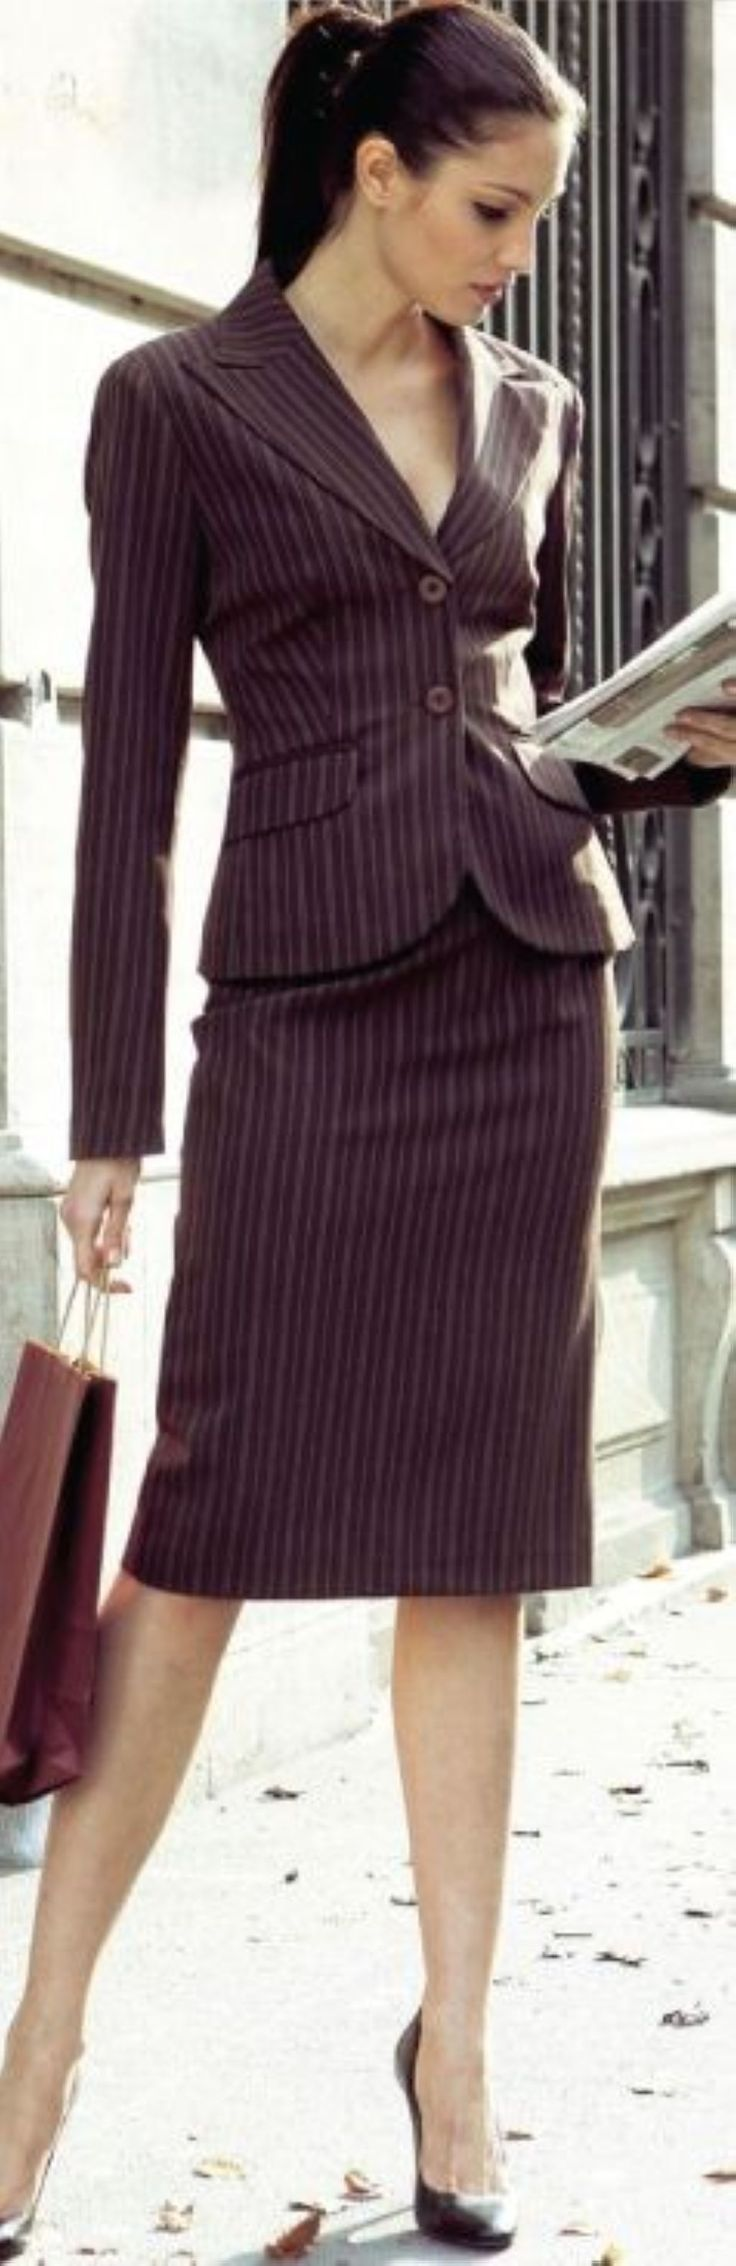 Stunning 41 Stylish Professional Interview Outfits for Women http://inspinre.com/2018/02/26/41-stylish-professional-interview-outfits-women/ #interviewoutfits